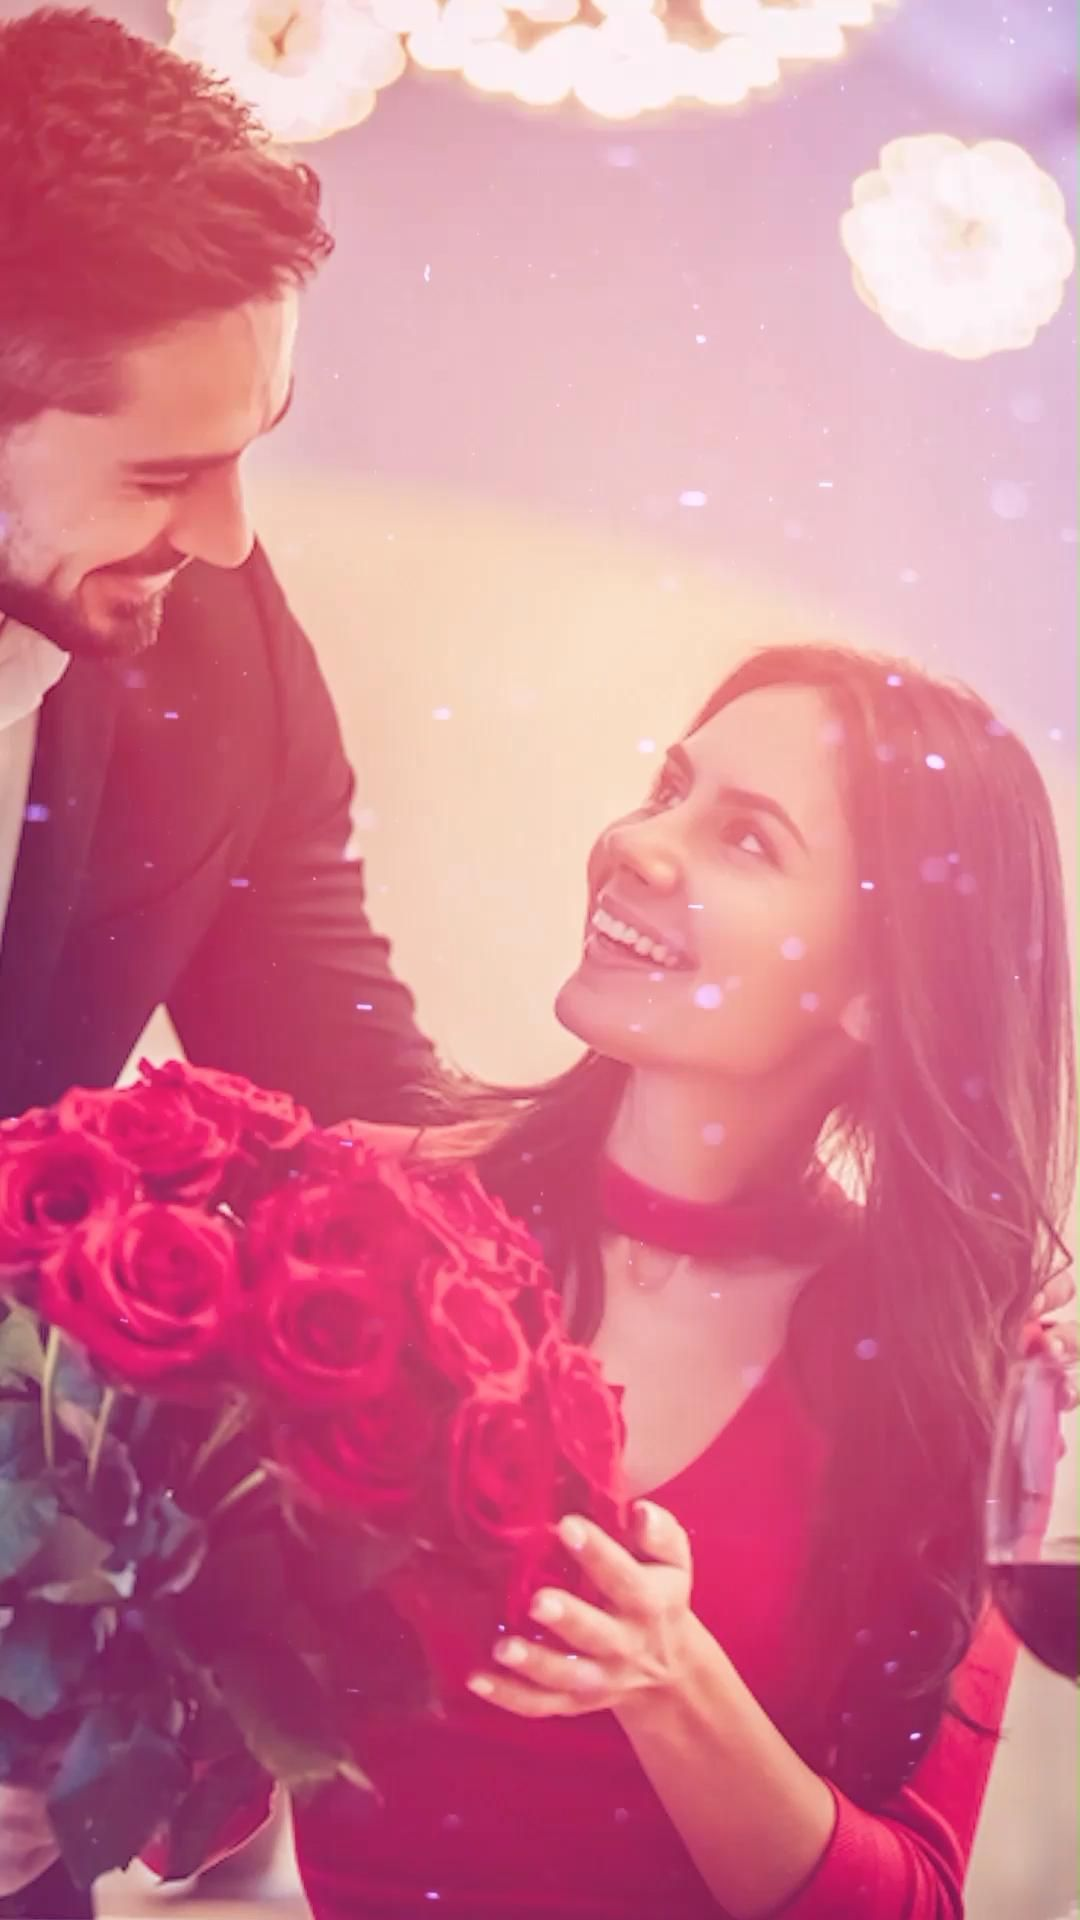 Happy Rose Day 2021 Video Face Video In 2021 Beautiful Songs Dj Movie Wedding Pics